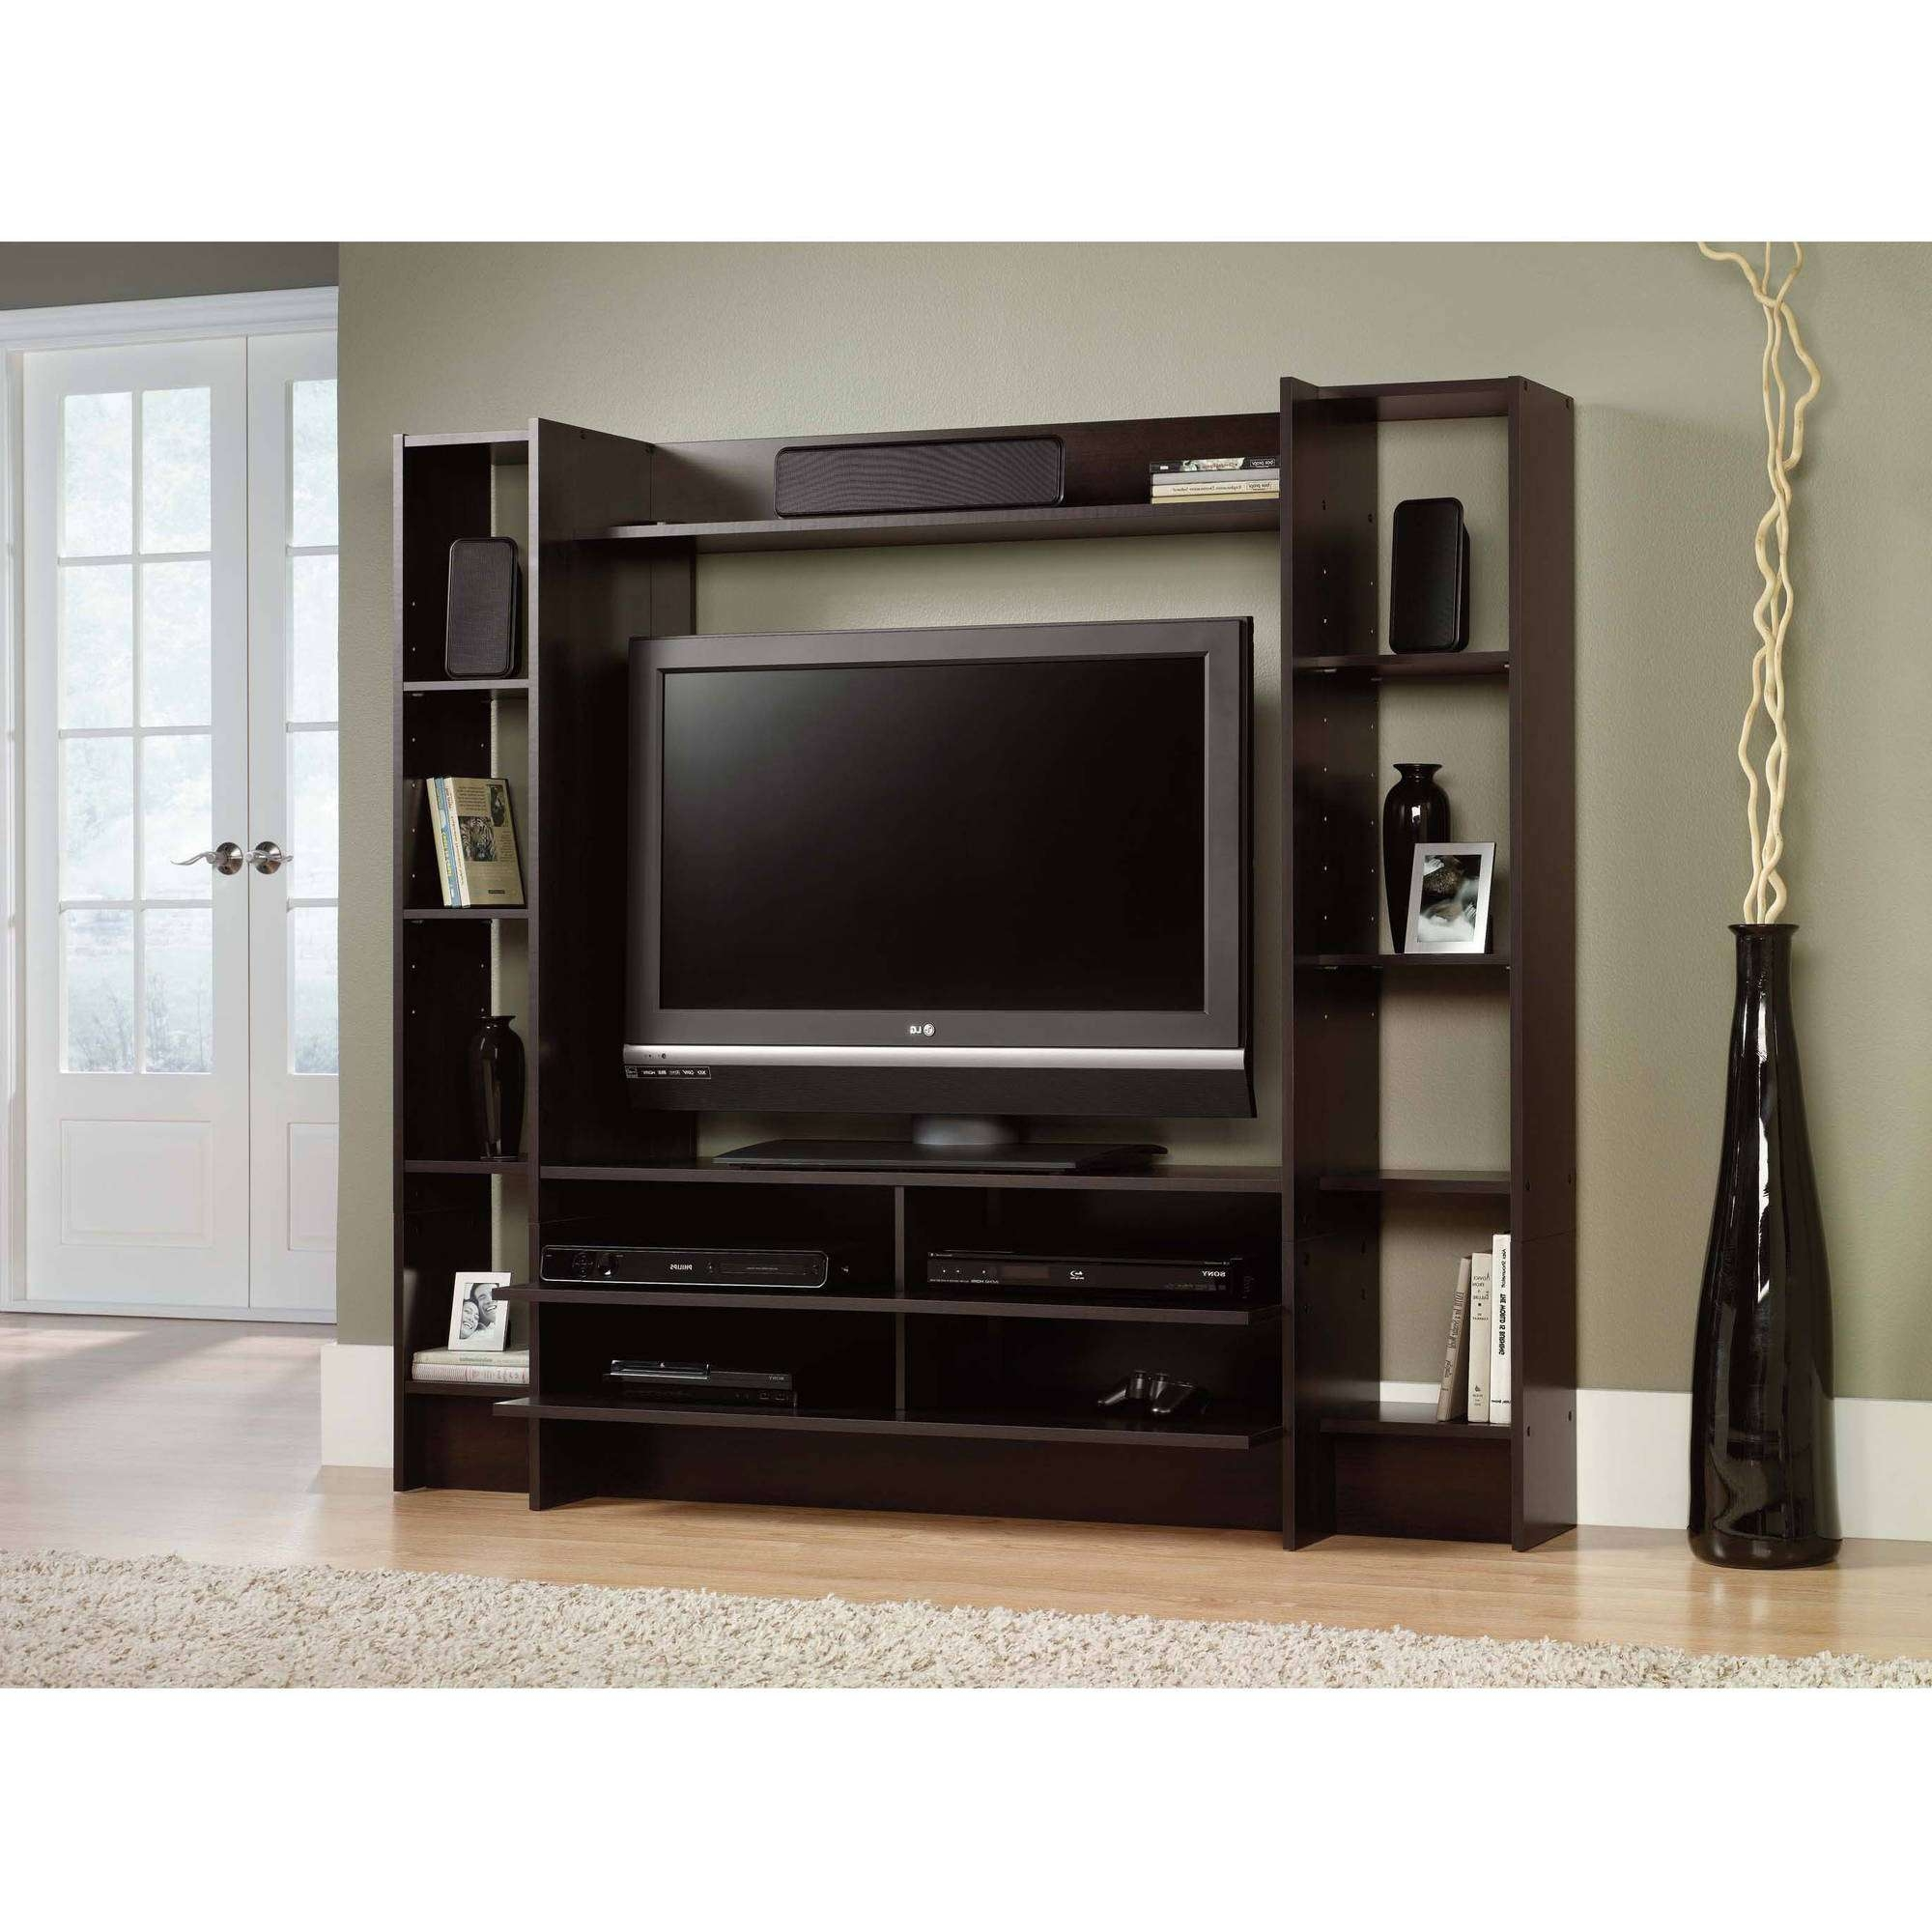 Tv Stands & Entertainment Centers – Walmart Pertaining To Tv Cabinets With Storage (View 16 of 20)